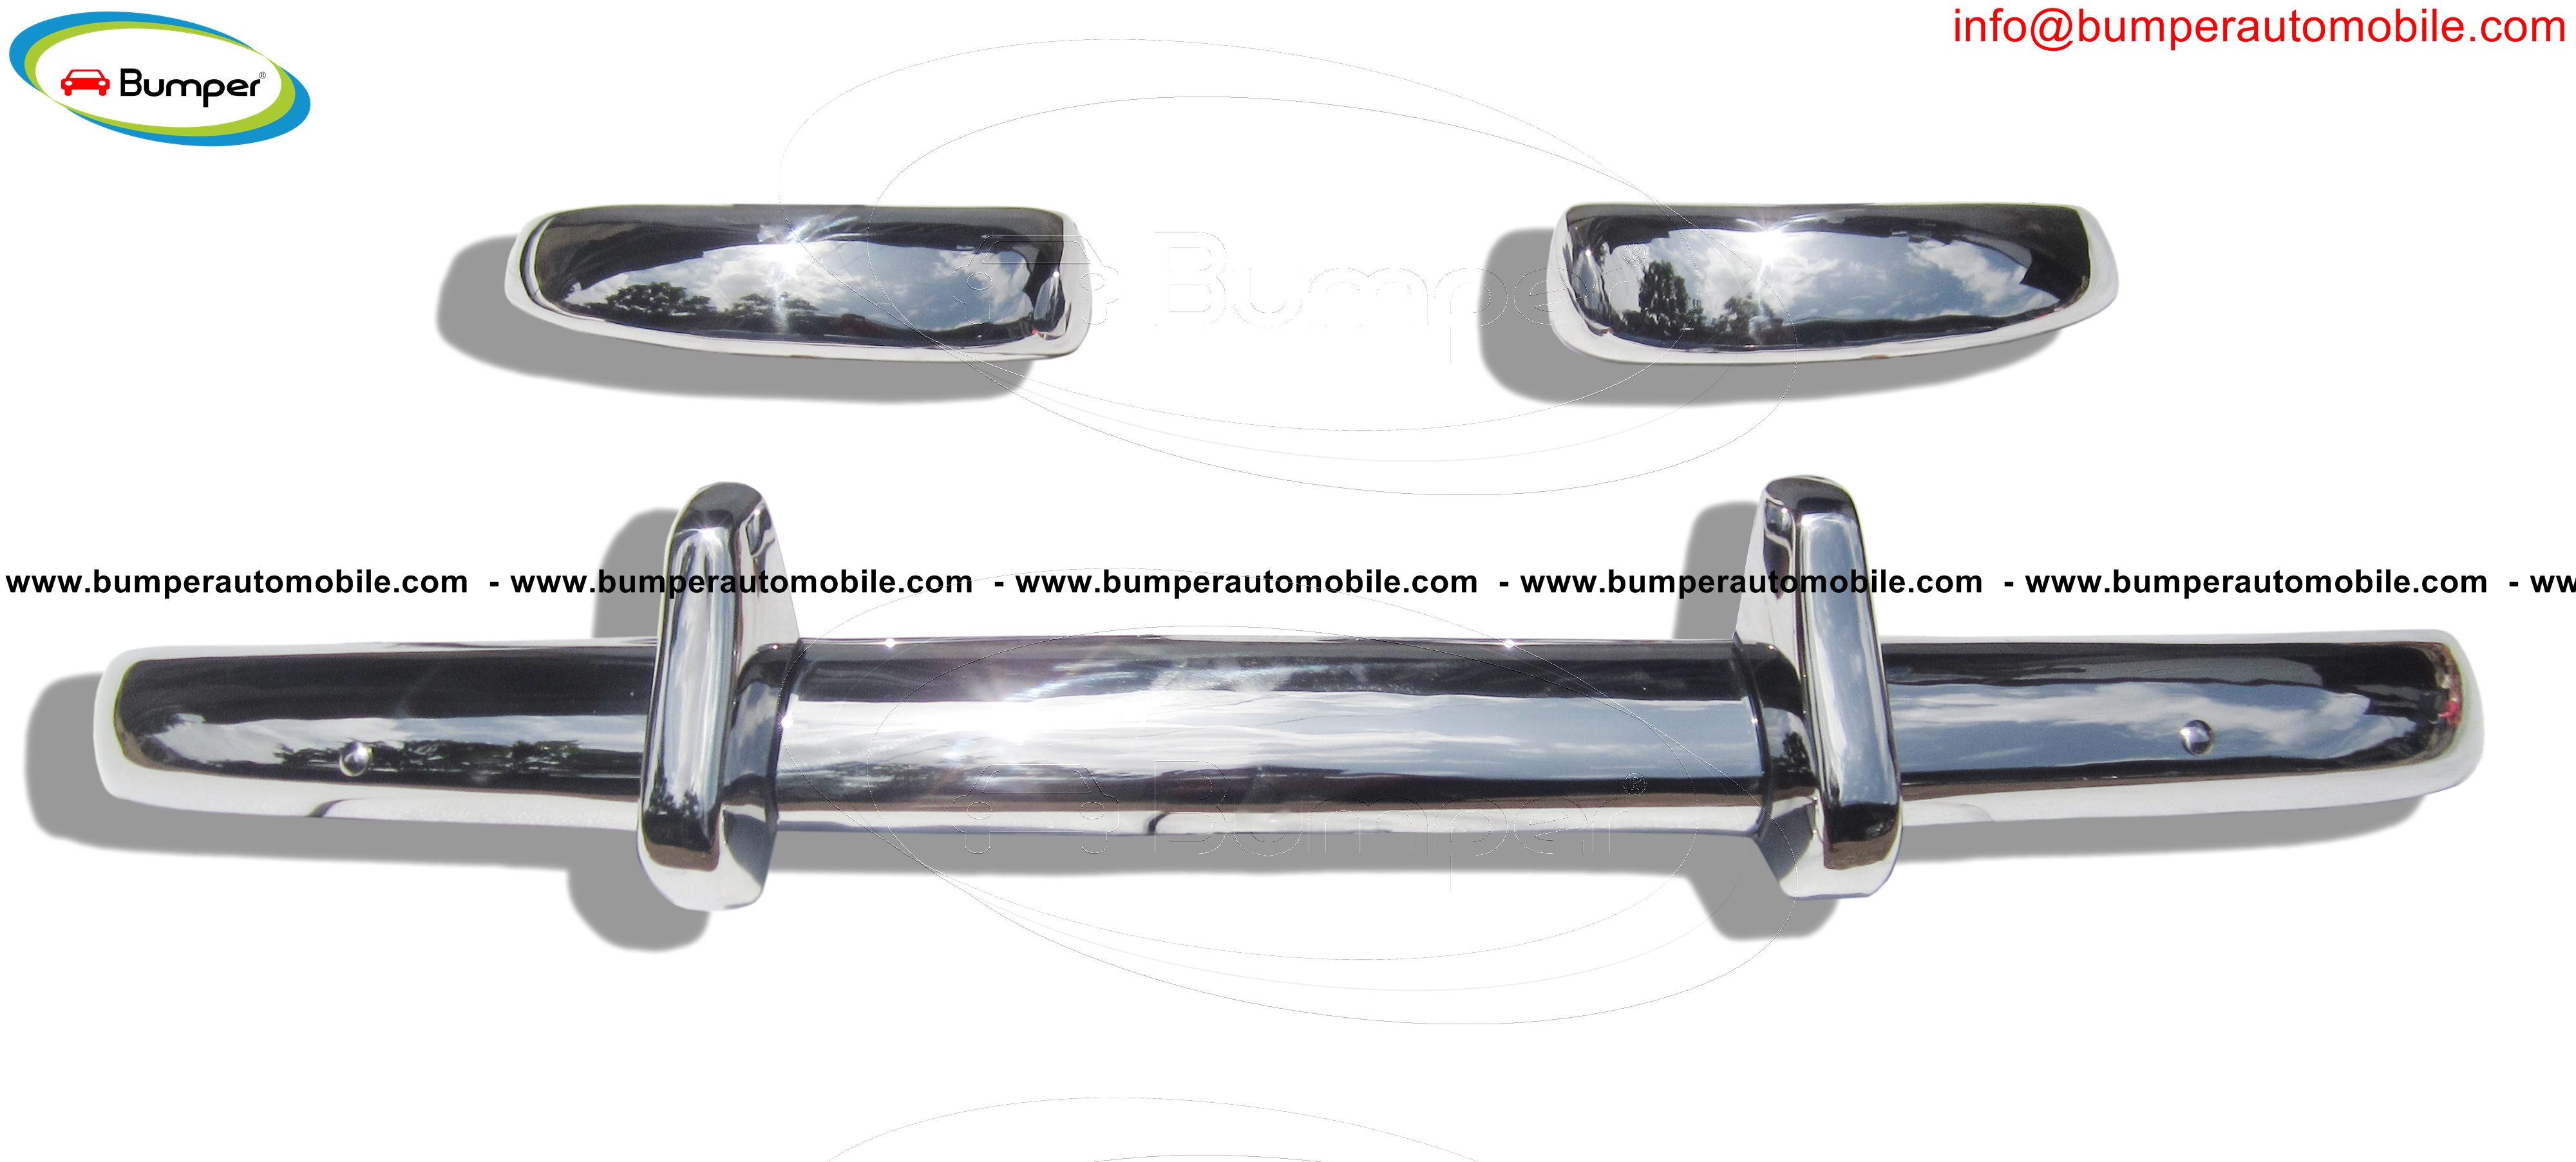 Volvo PV Duett Kombi years (1953-1969) bumpers stainless steel